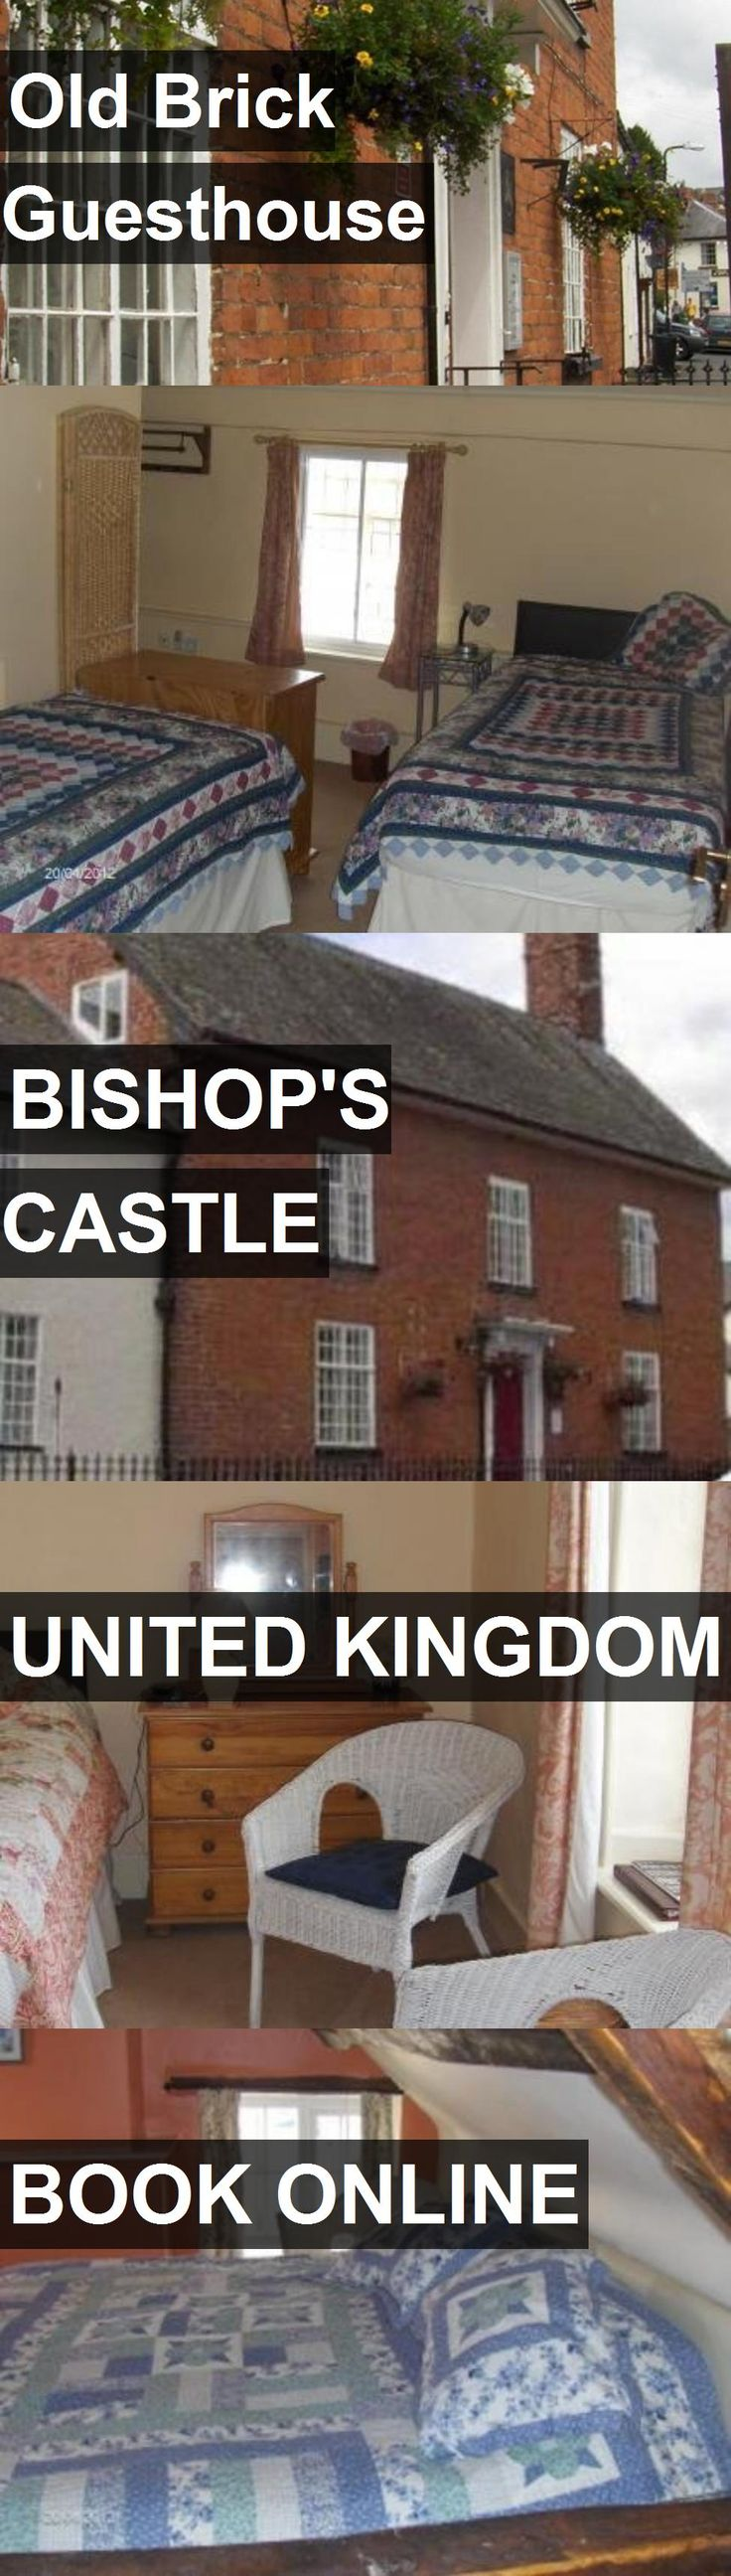 Hotel Old Brick Guesthouse in Bishop's Castle, United Kingdom. For more information, photos, reviews and best prices please follow the link. #UnitedKingdom #Bishop'sCastle #OldBrickGuesthouse #hotel #travel #vacation